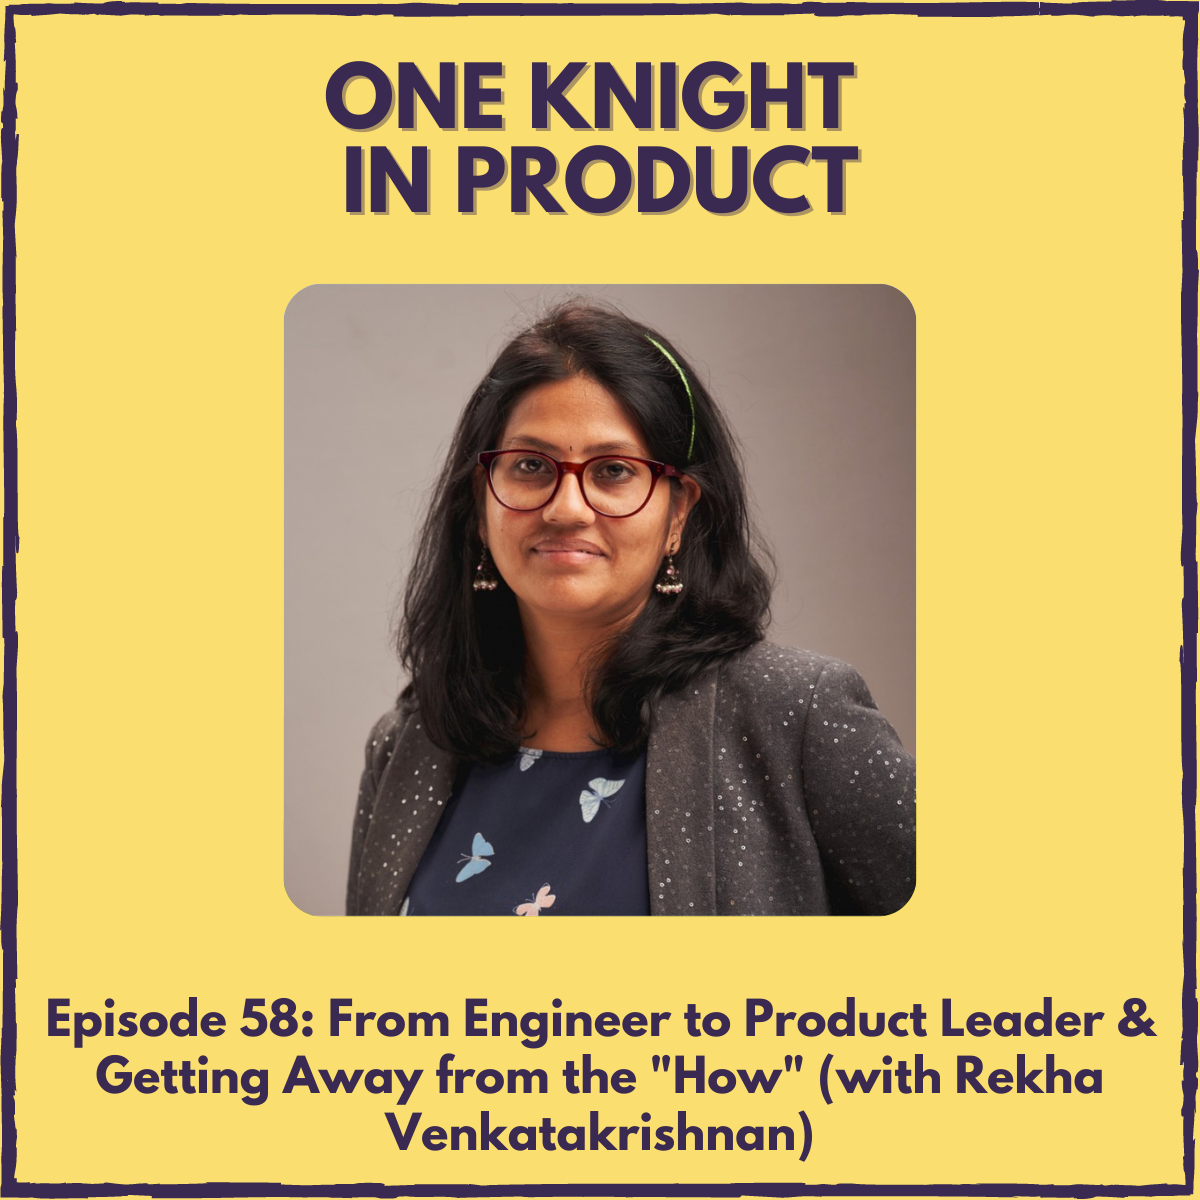 """From Engineer to Product Leader & Getting Away from the """"How"""" (with Rekha Venkatakrishnan, Senior Manager, Group PM @ Walmart)"""